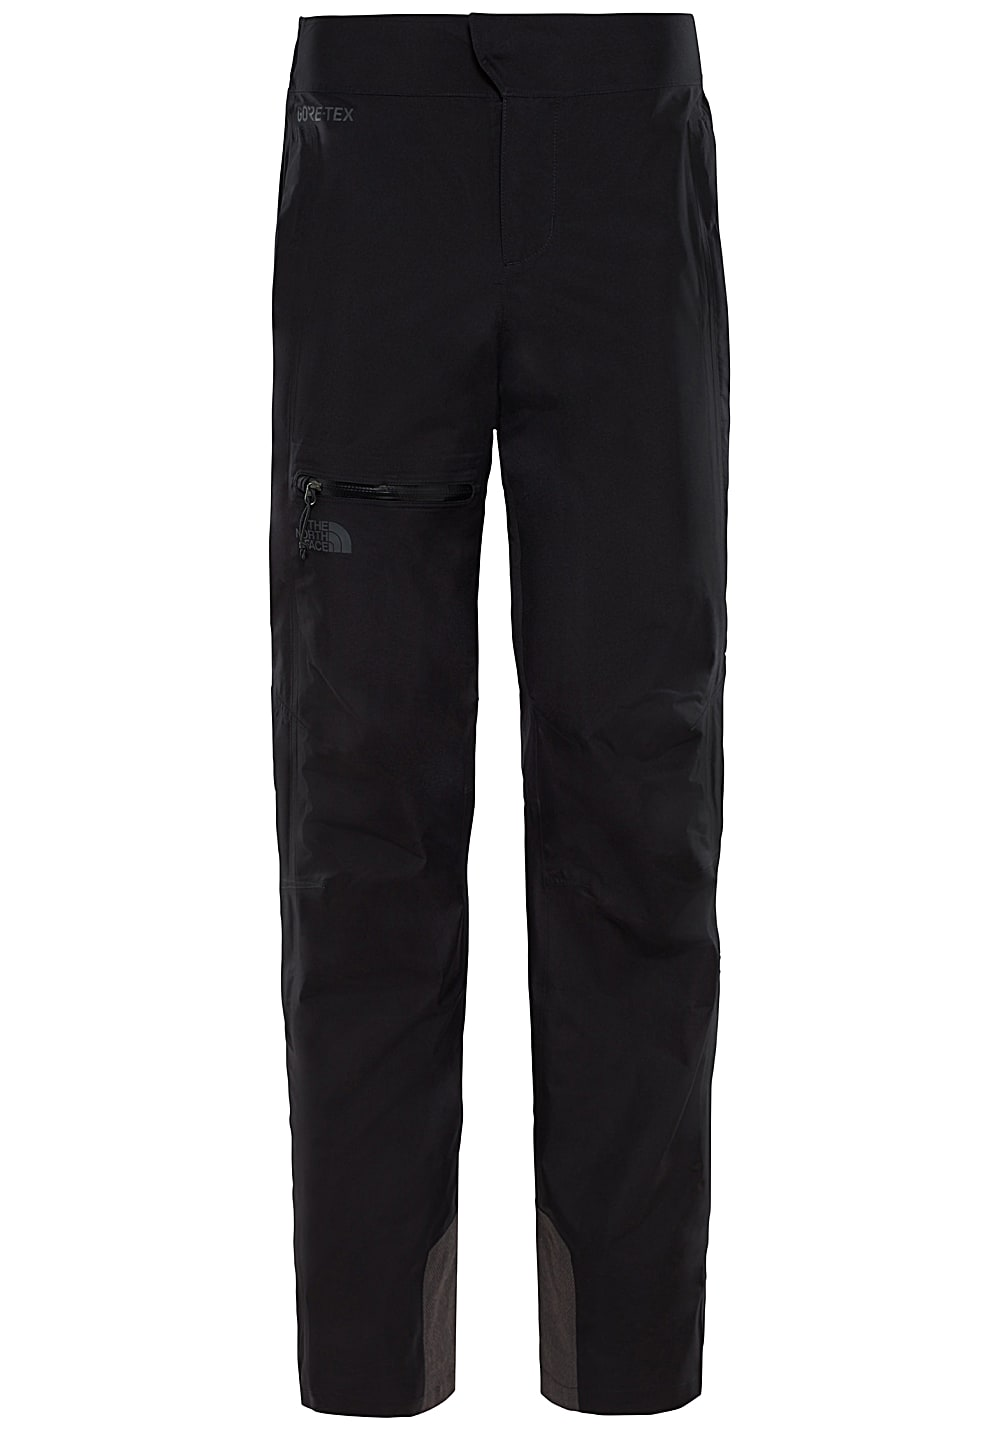 THE NORTH FACE Dryzzle Fz - Outdoorhose für Damen - Schwarz